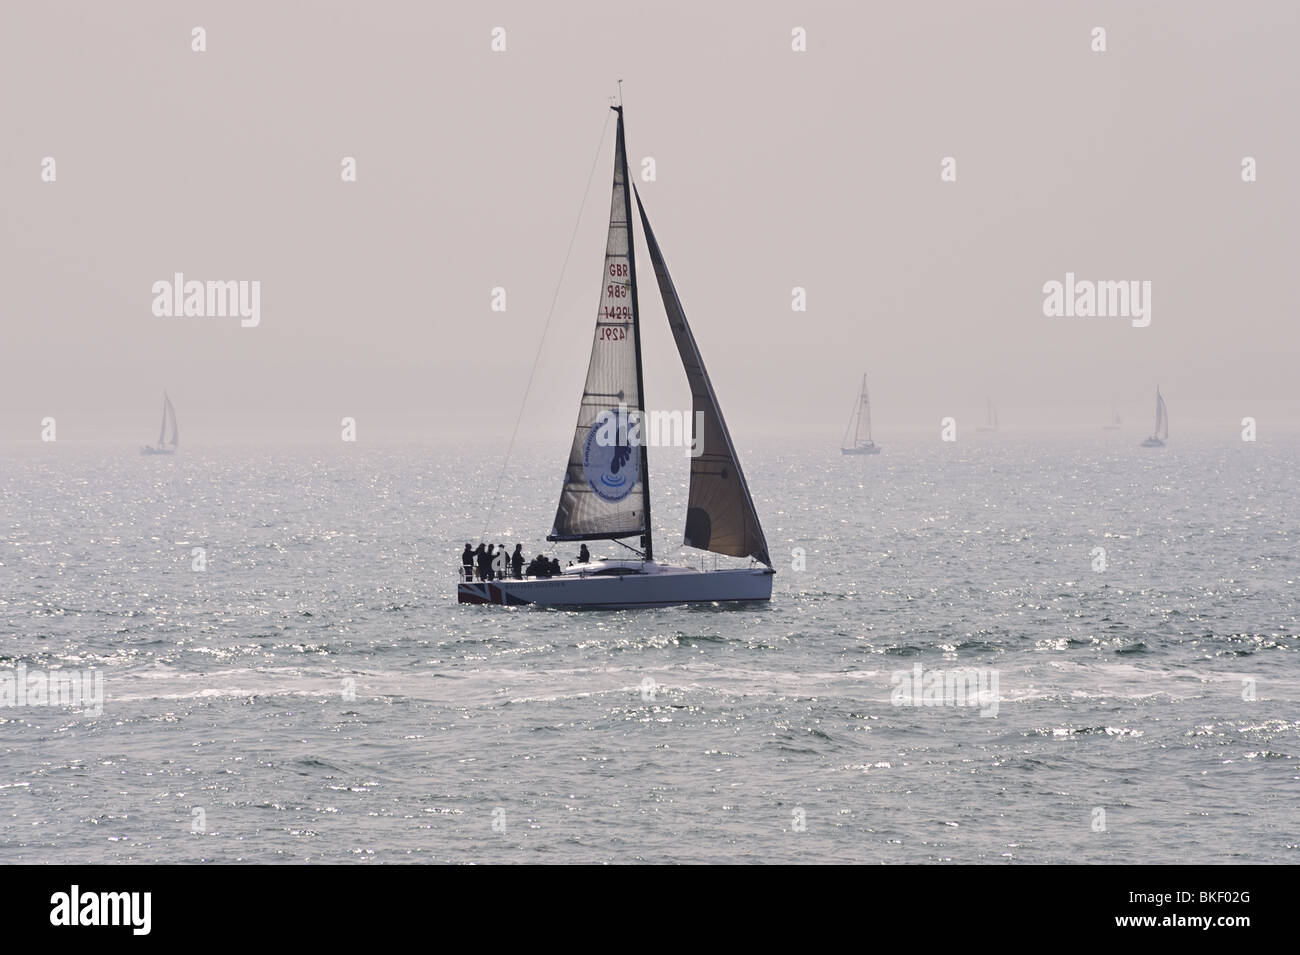 Yatch, 'British Soldier', sailing off Southsea, Hampshire, in misty sunlight - Stock Image